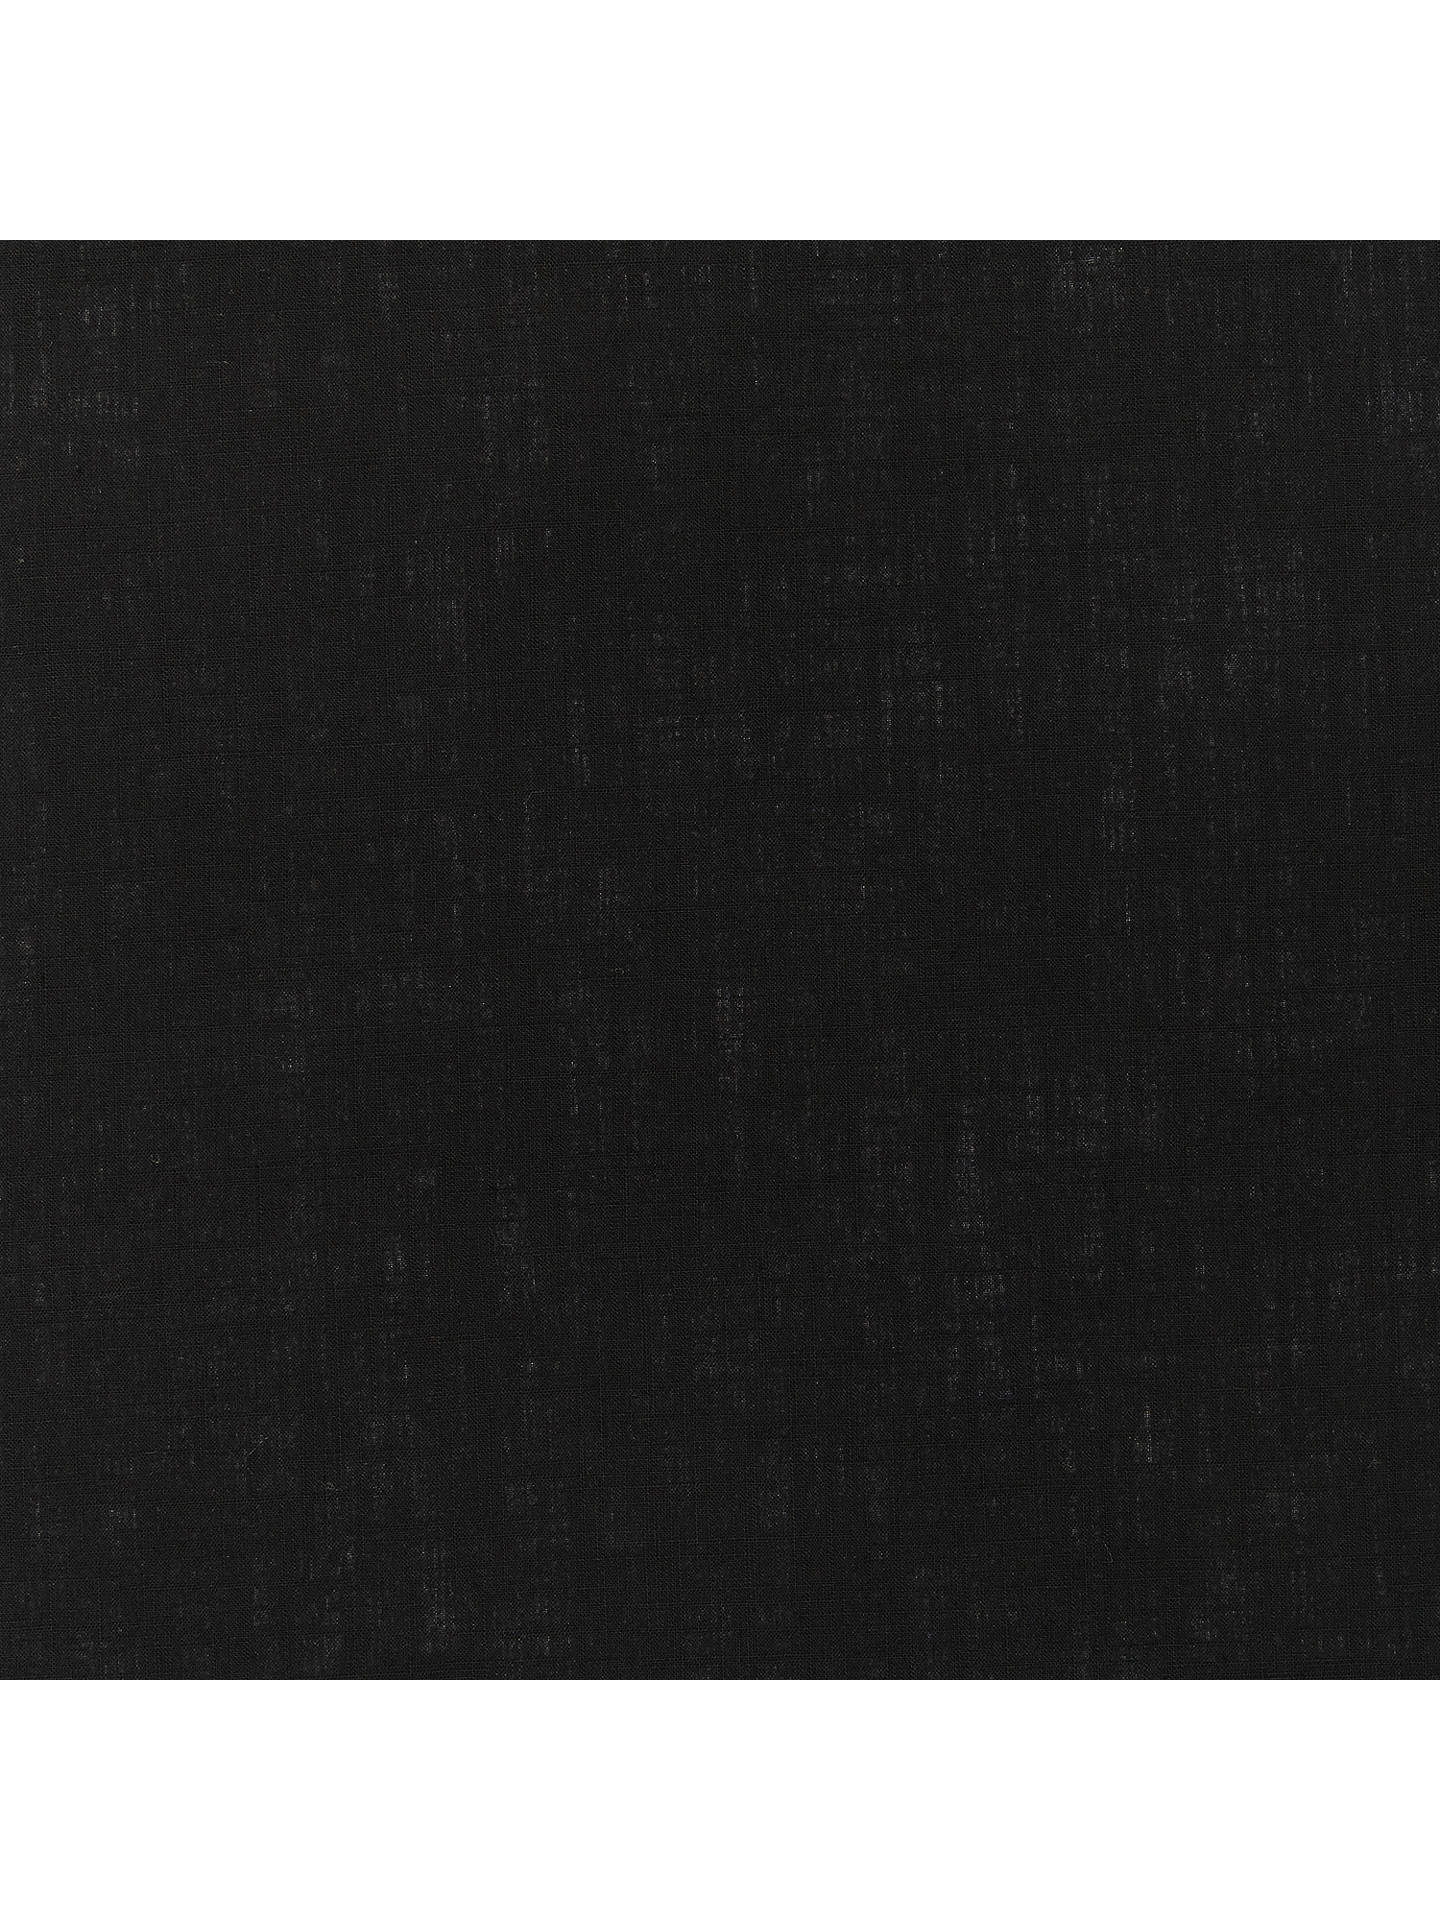 BuyOddies Textiles Linen Look Fabric, Black Online at johnlewis.com